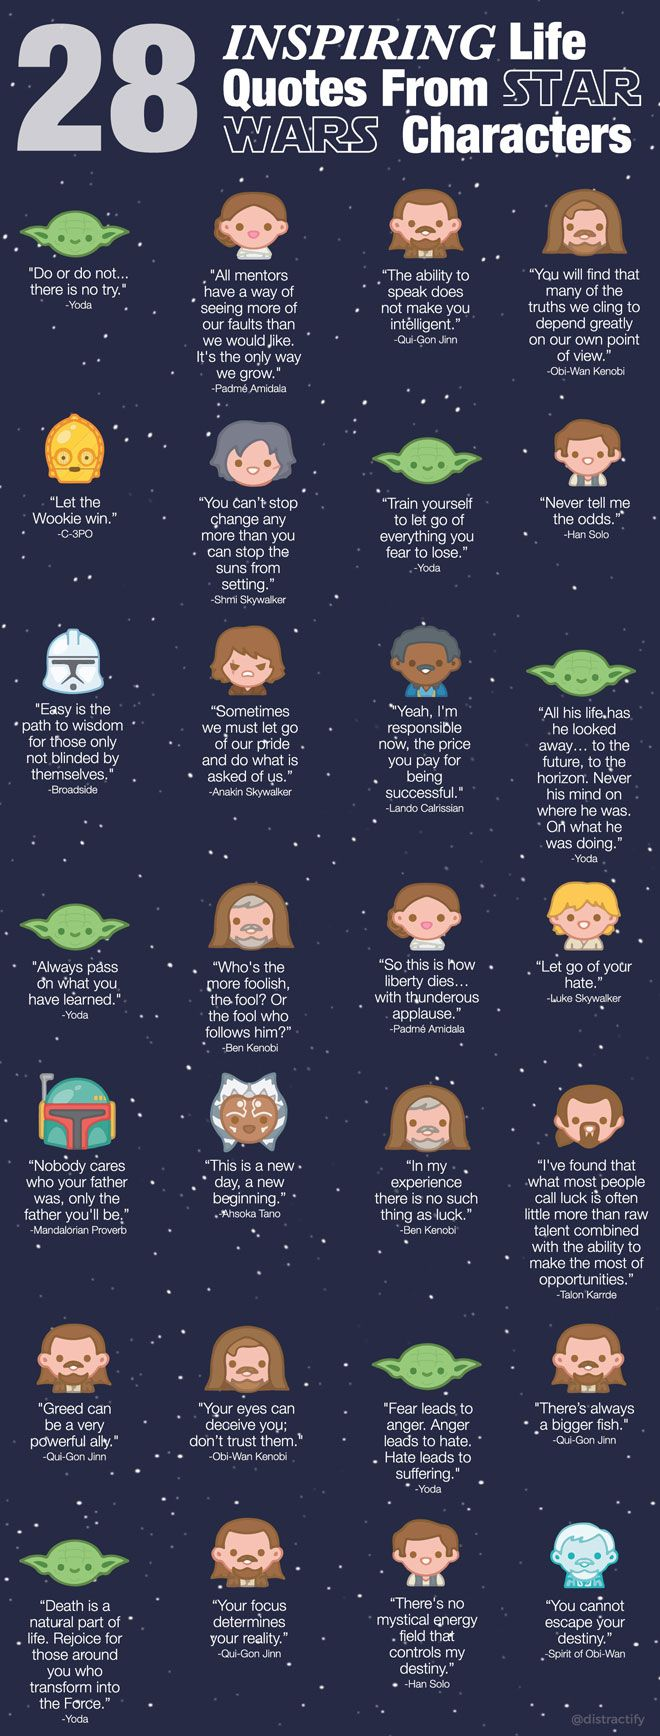 Everybody seems to be talking about Star Wars these days. The franchise has millions of fans around the world. If you have watched all Star Wars movies, you have probably taken note of these wise quotes (via Distractify):